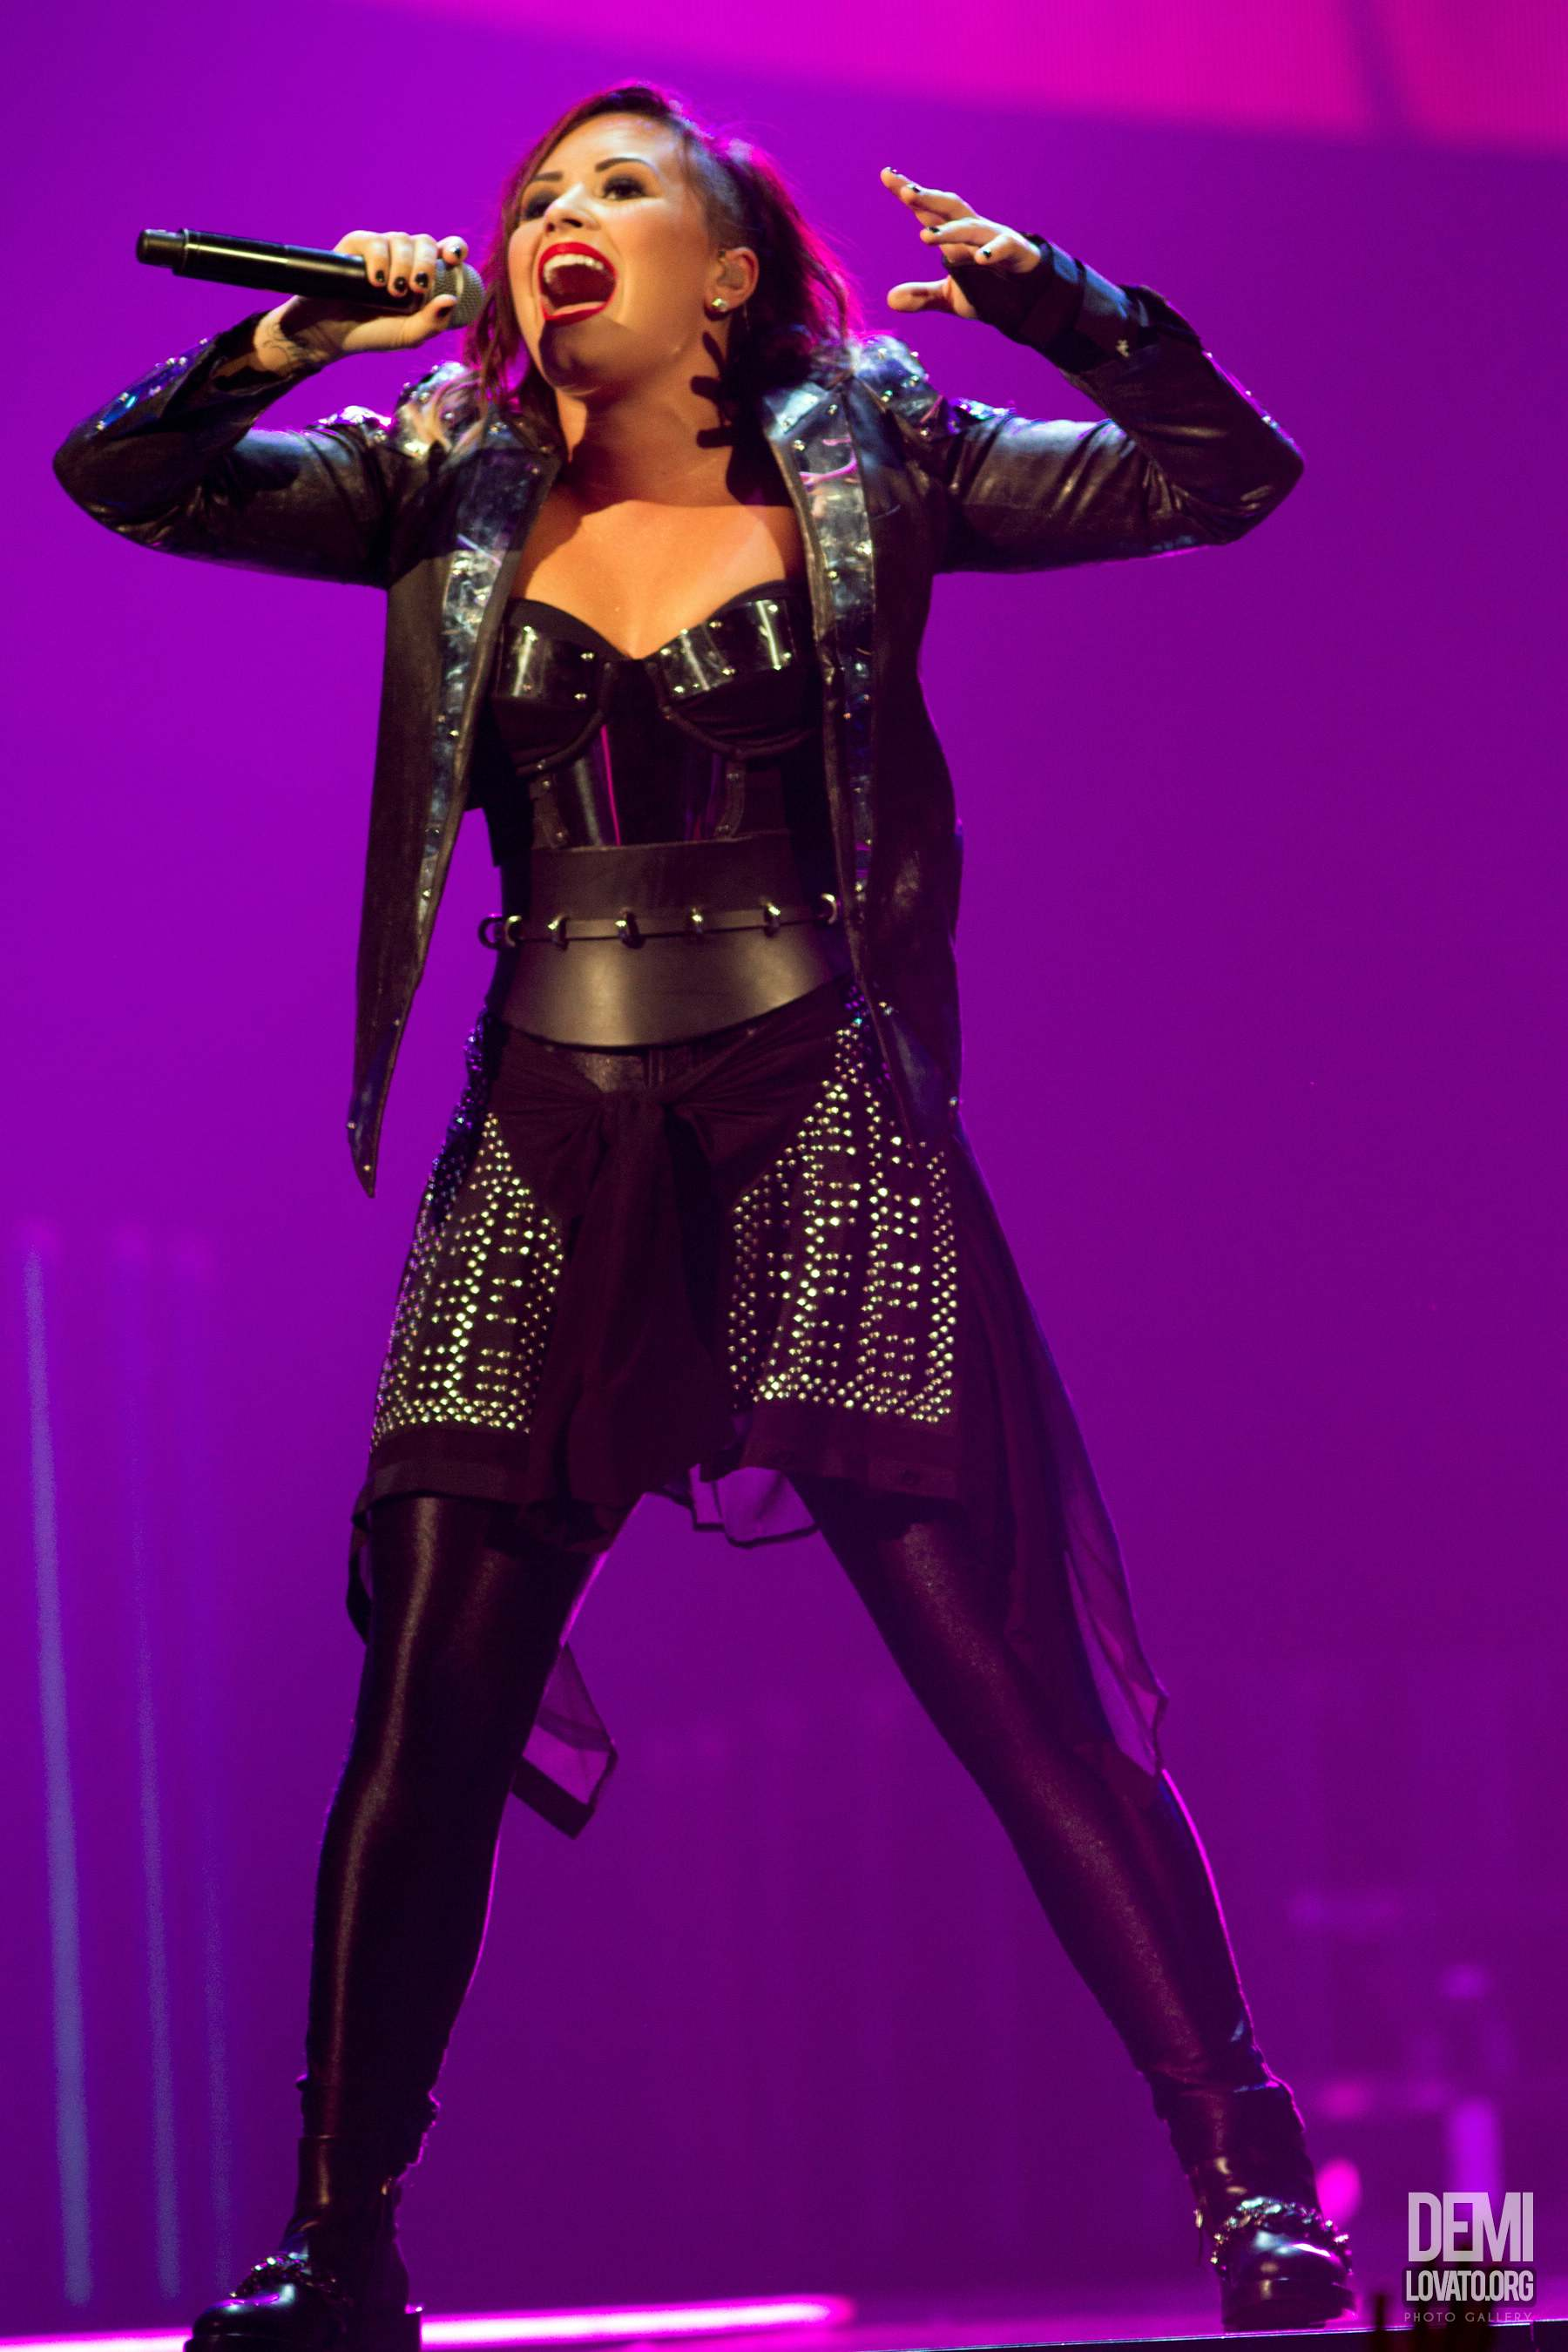 Demi Lovato Performs at San Antonio TX for World Tour - September 19